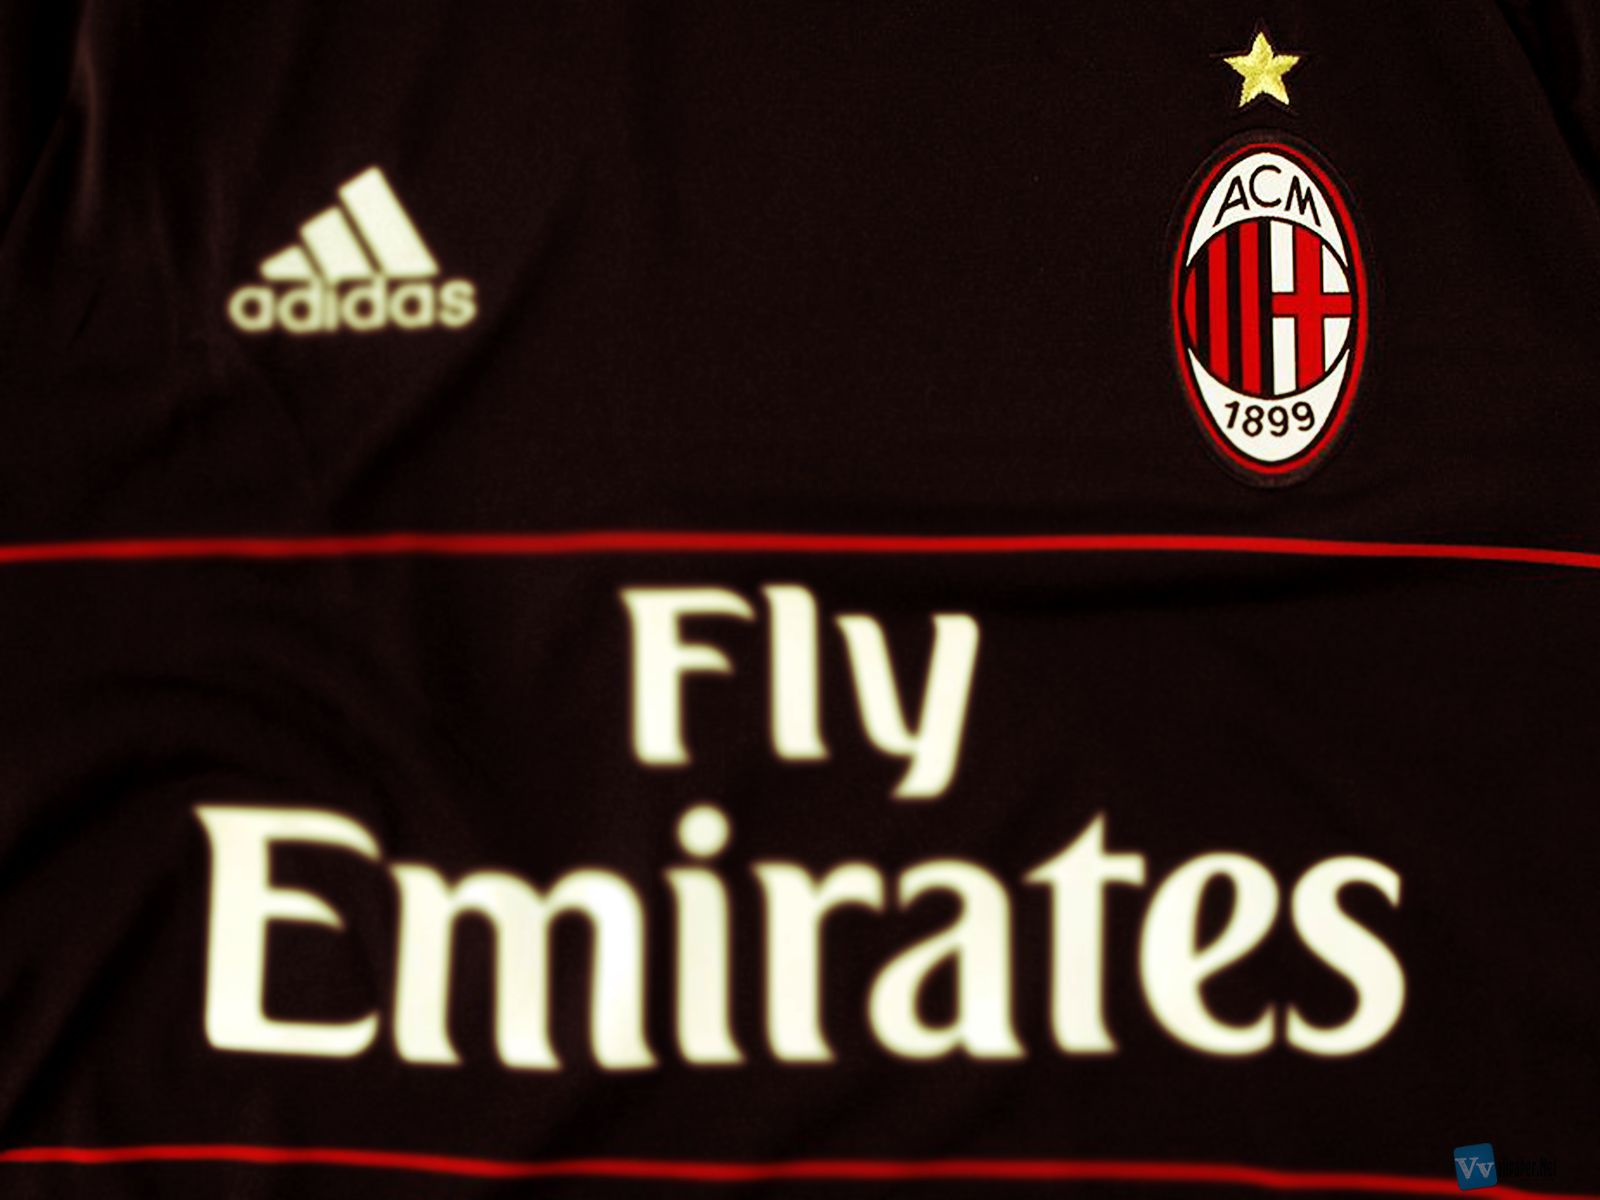 Hd wallpaper ac milan - Ac Milan Black Adidas Uniform Hd Wallpaper